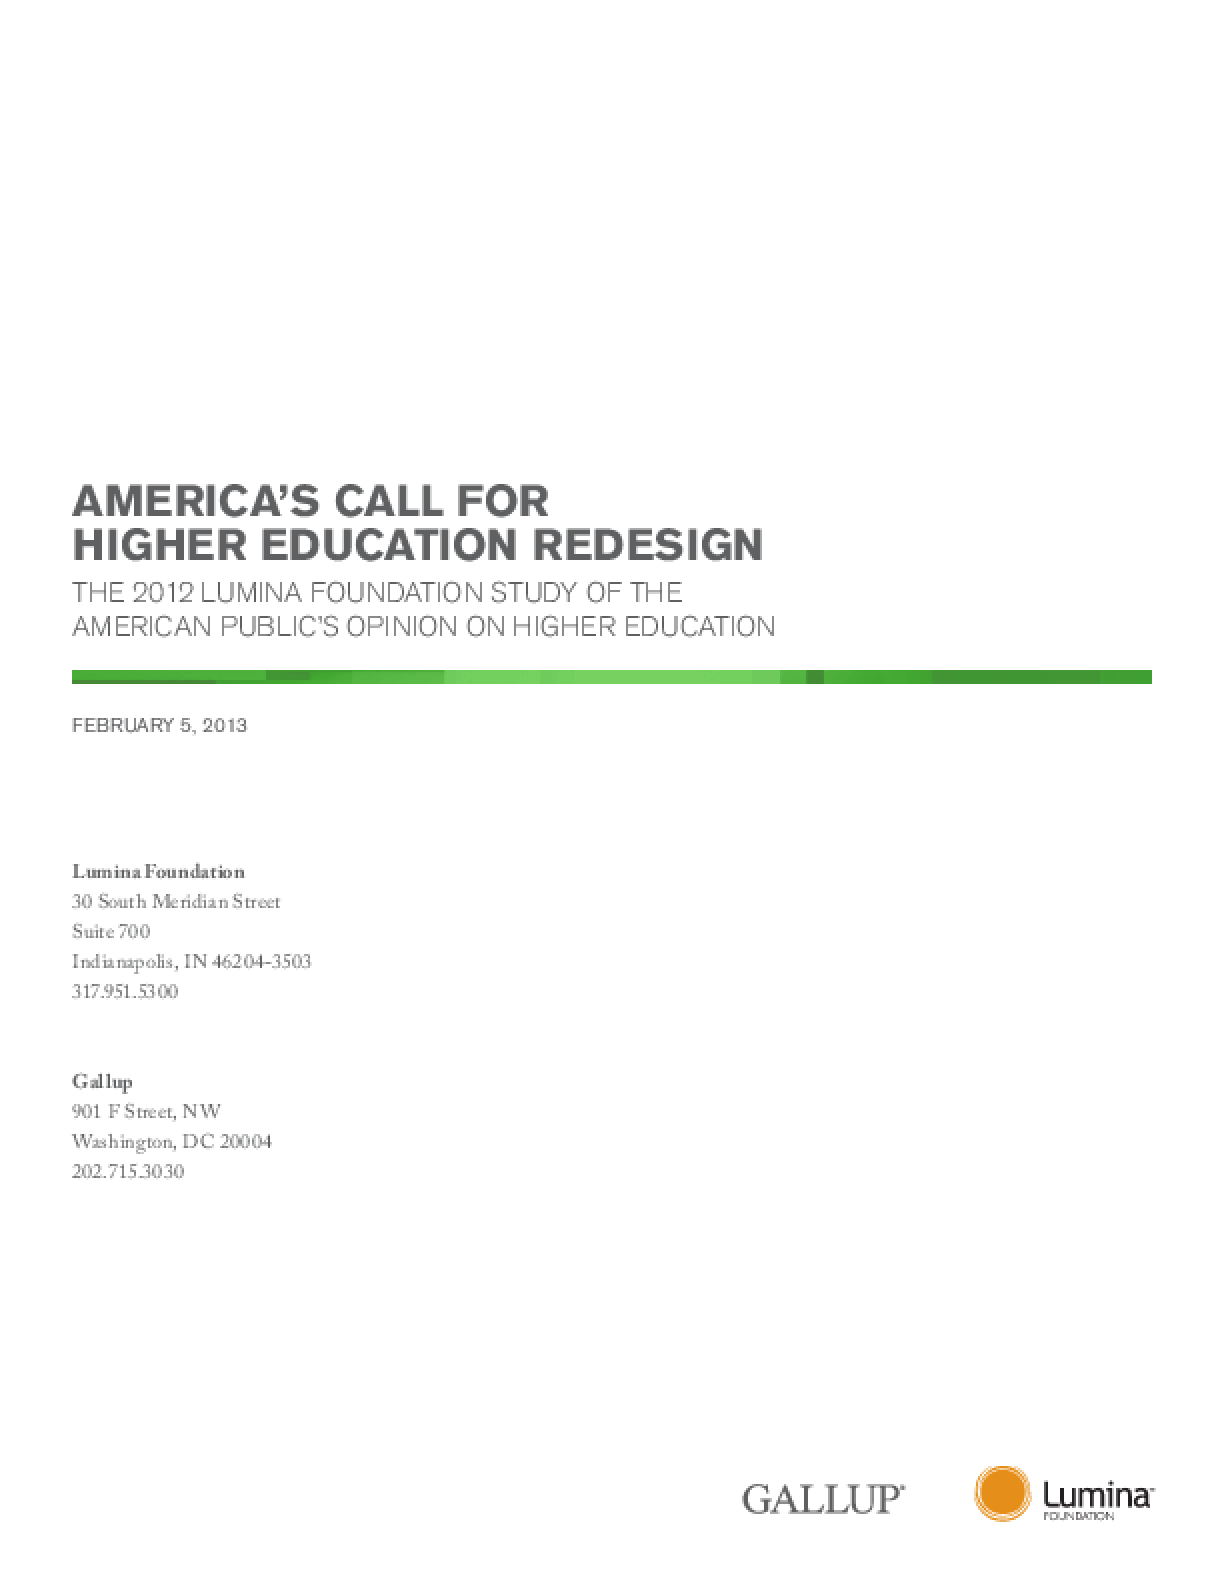 America's Call for Higher Education Redesign: The 2012 Lumina Foundation Study of the American Public's Opinion on Higher Education